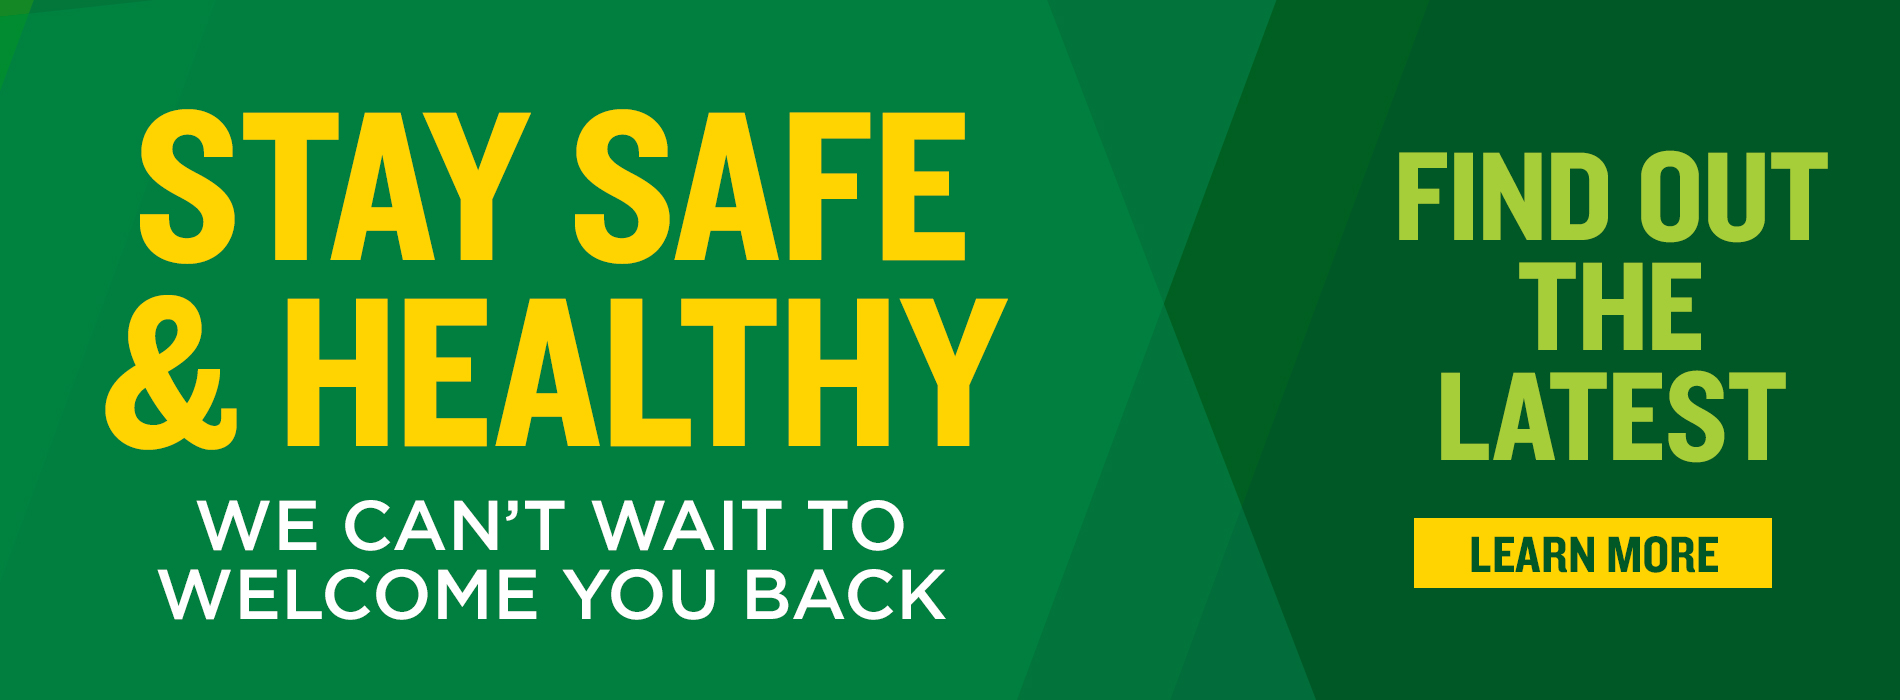 Stay Safe and Healthy! We can't wait to welcome you back.